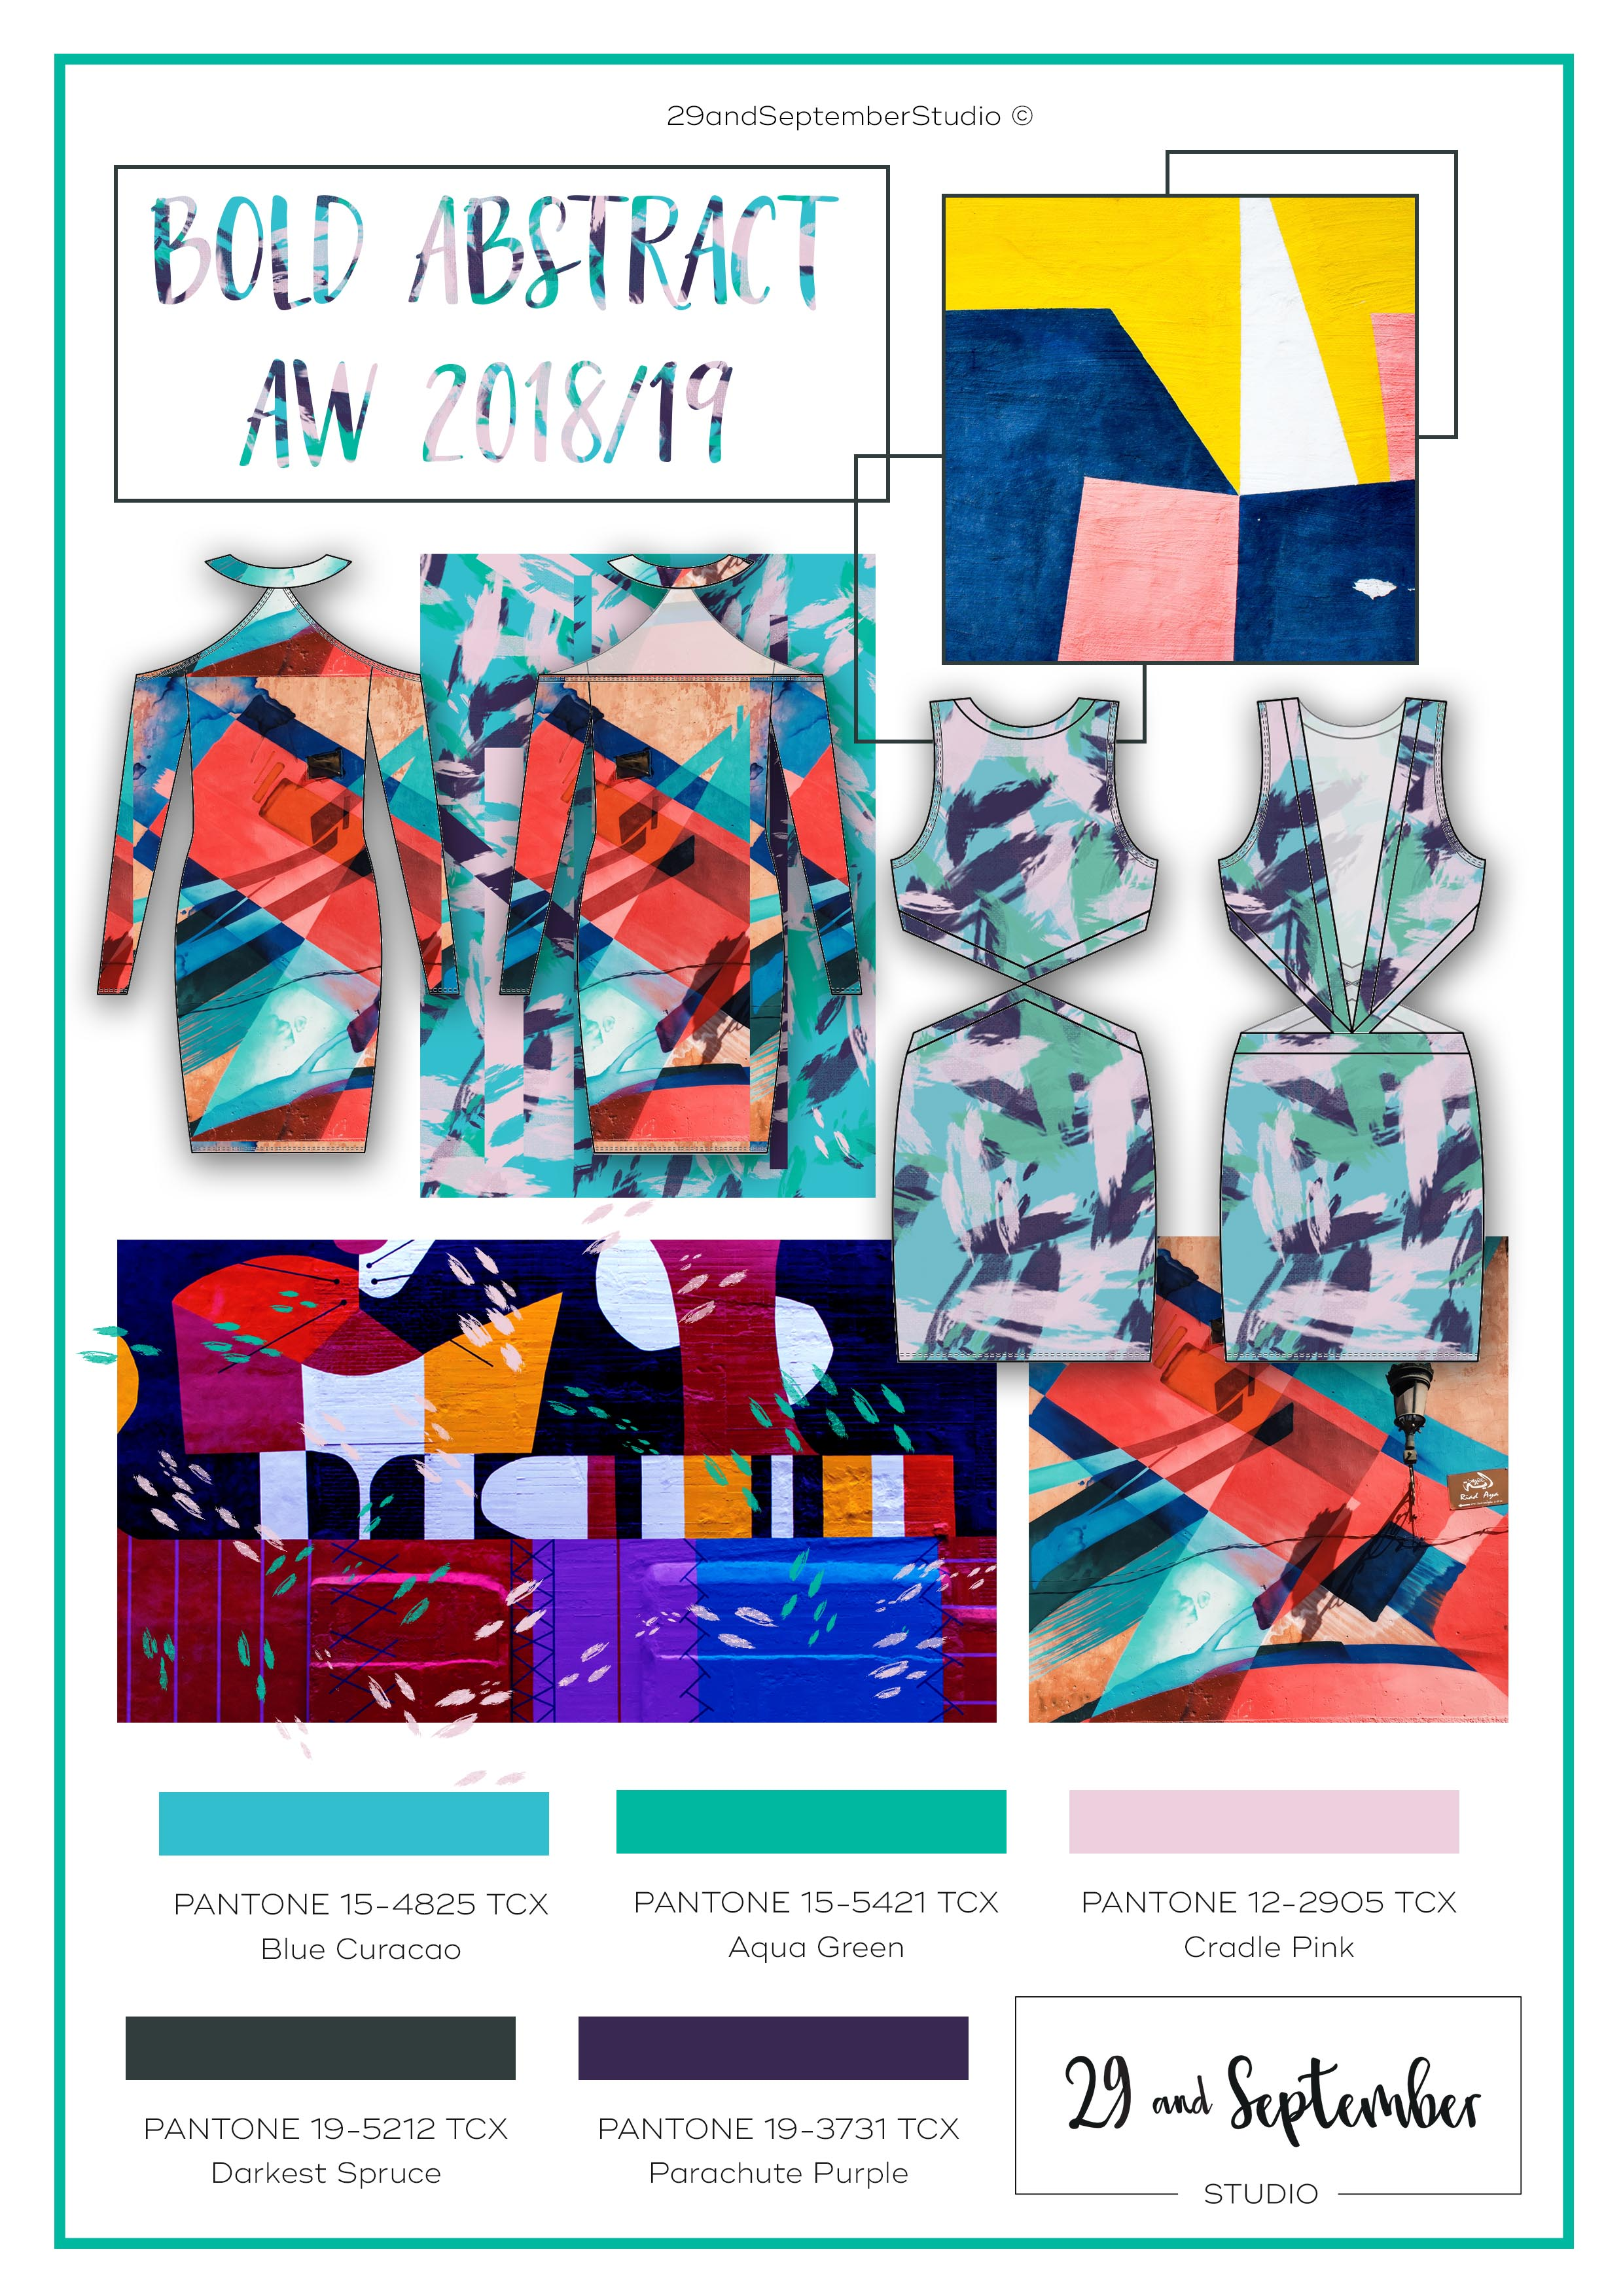 F/W 2018/19 fashion trends; Bold Abstract | Woman's fashion inspiration | technical drawings for apparel by 29andSeptember Studio | Free fashion trend information | WGSN